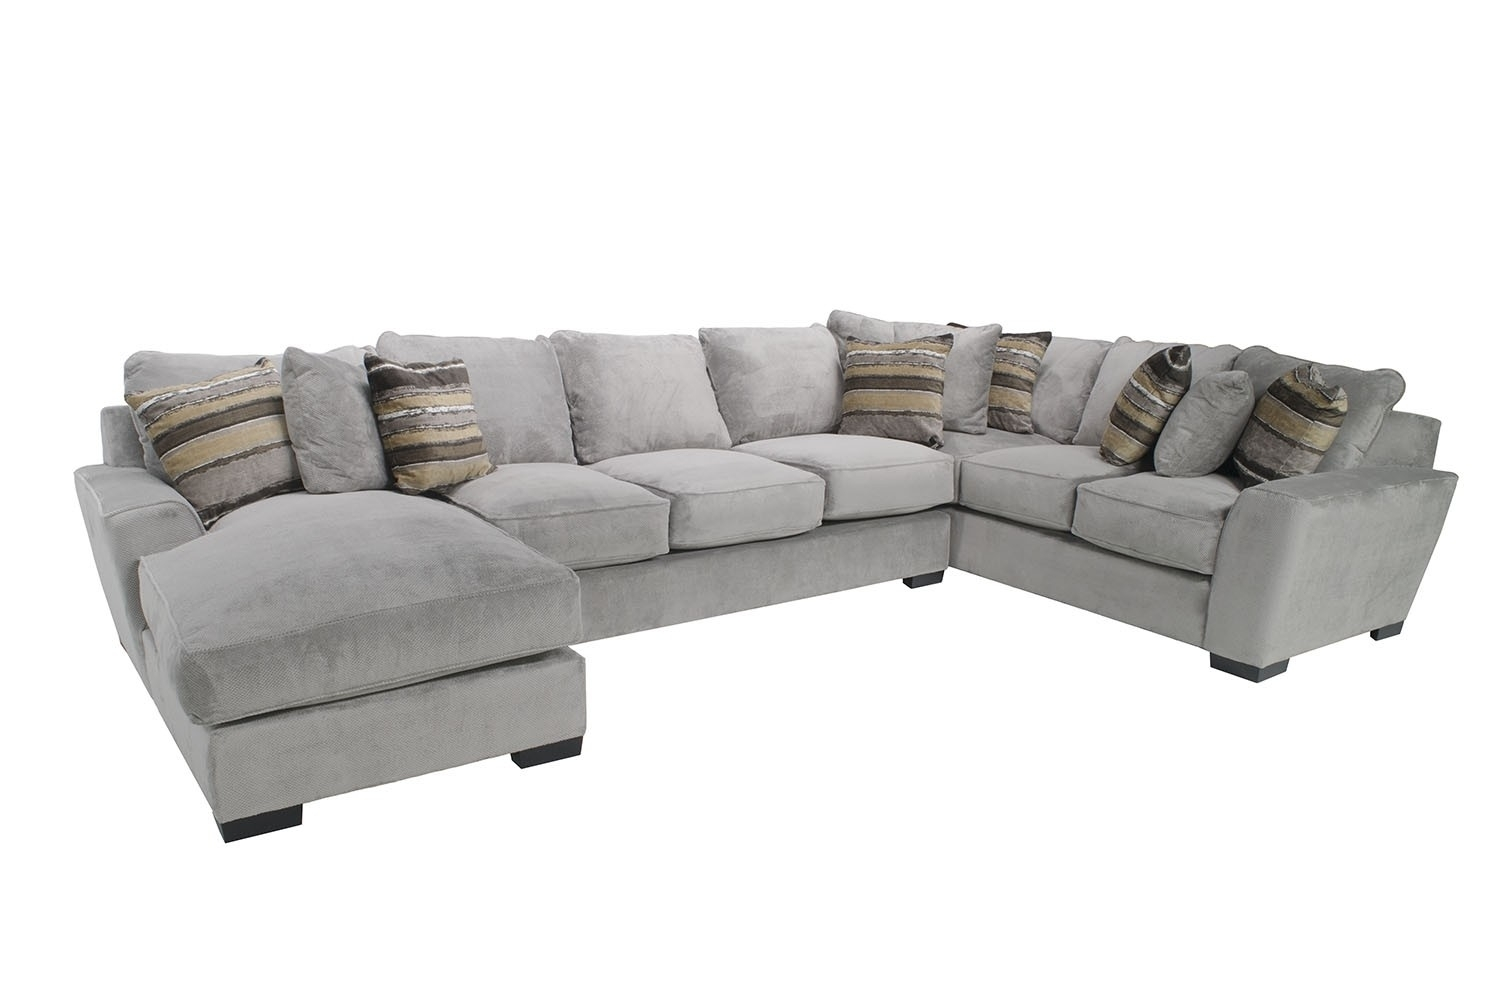 Sectional Sofas | Save Mor Online And In-Store for Aspen 2 Piece Sleeper Sectionals With Raf Chaise (Image 28 of 30)